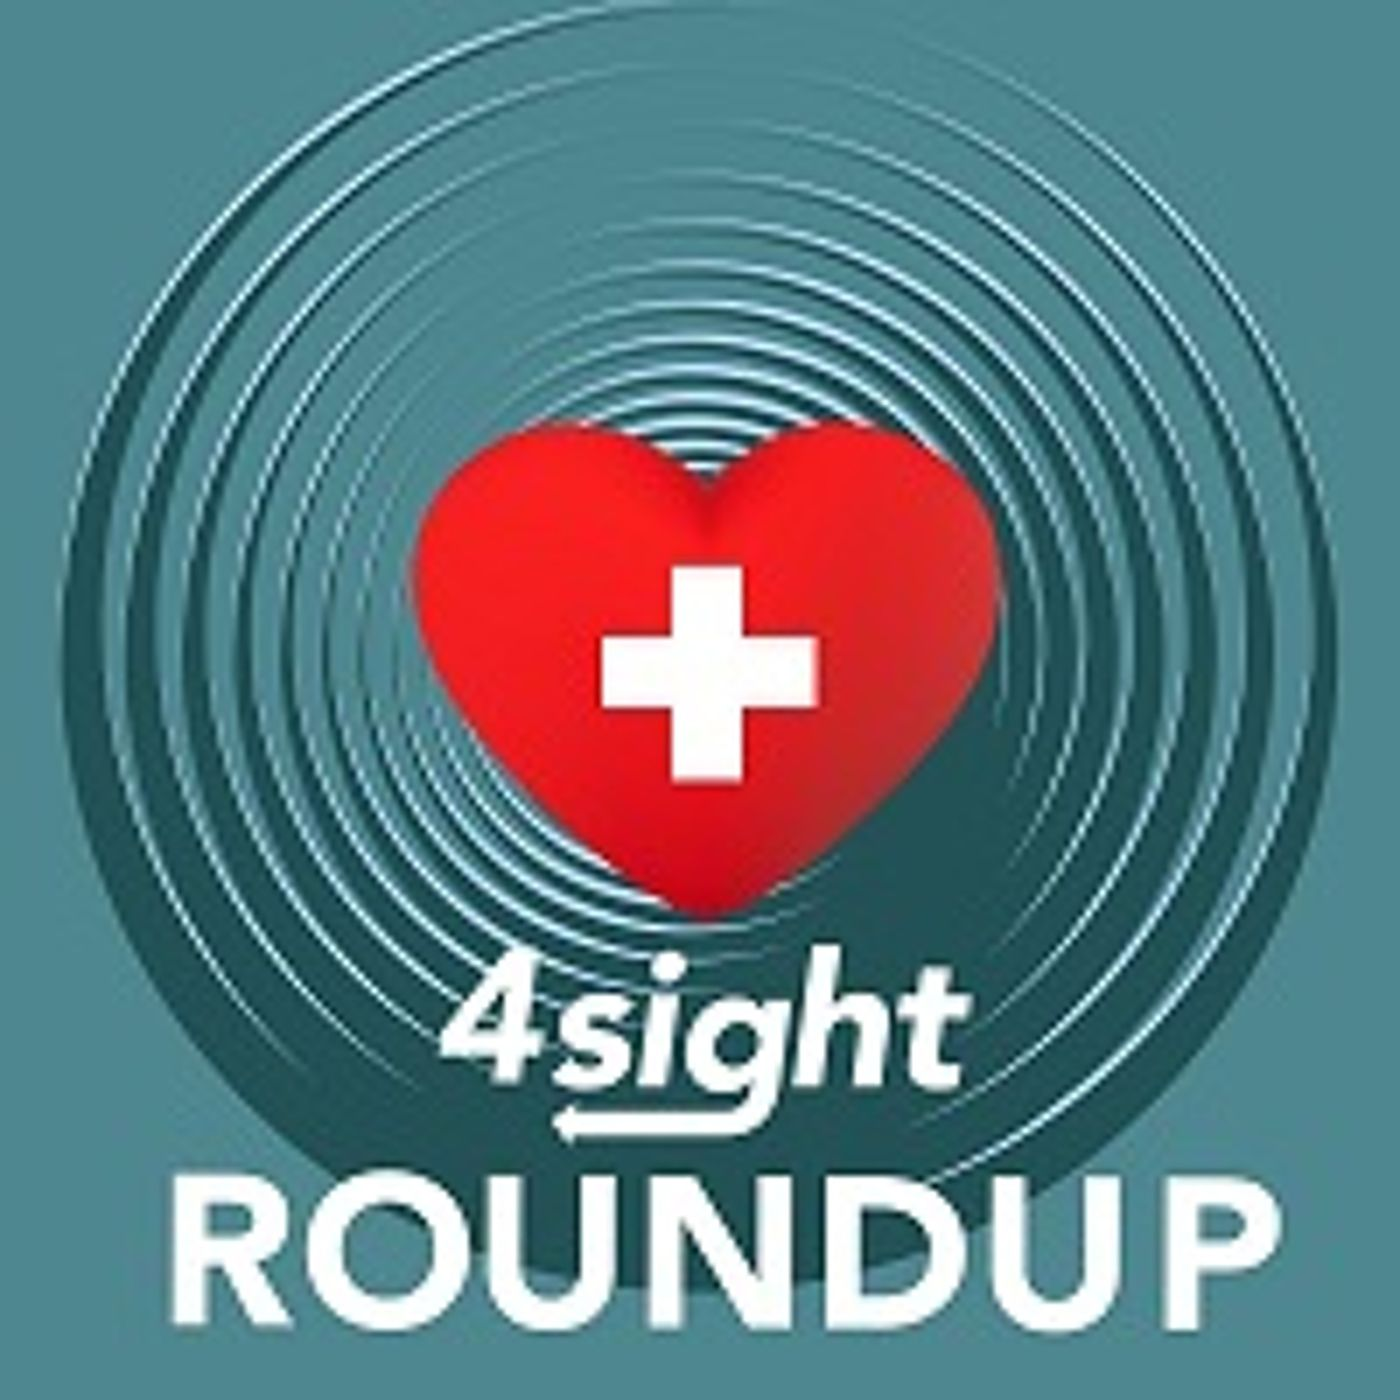 4sight Roundup: News on 05-14-2021 - Innovating Medicaid Managed Care